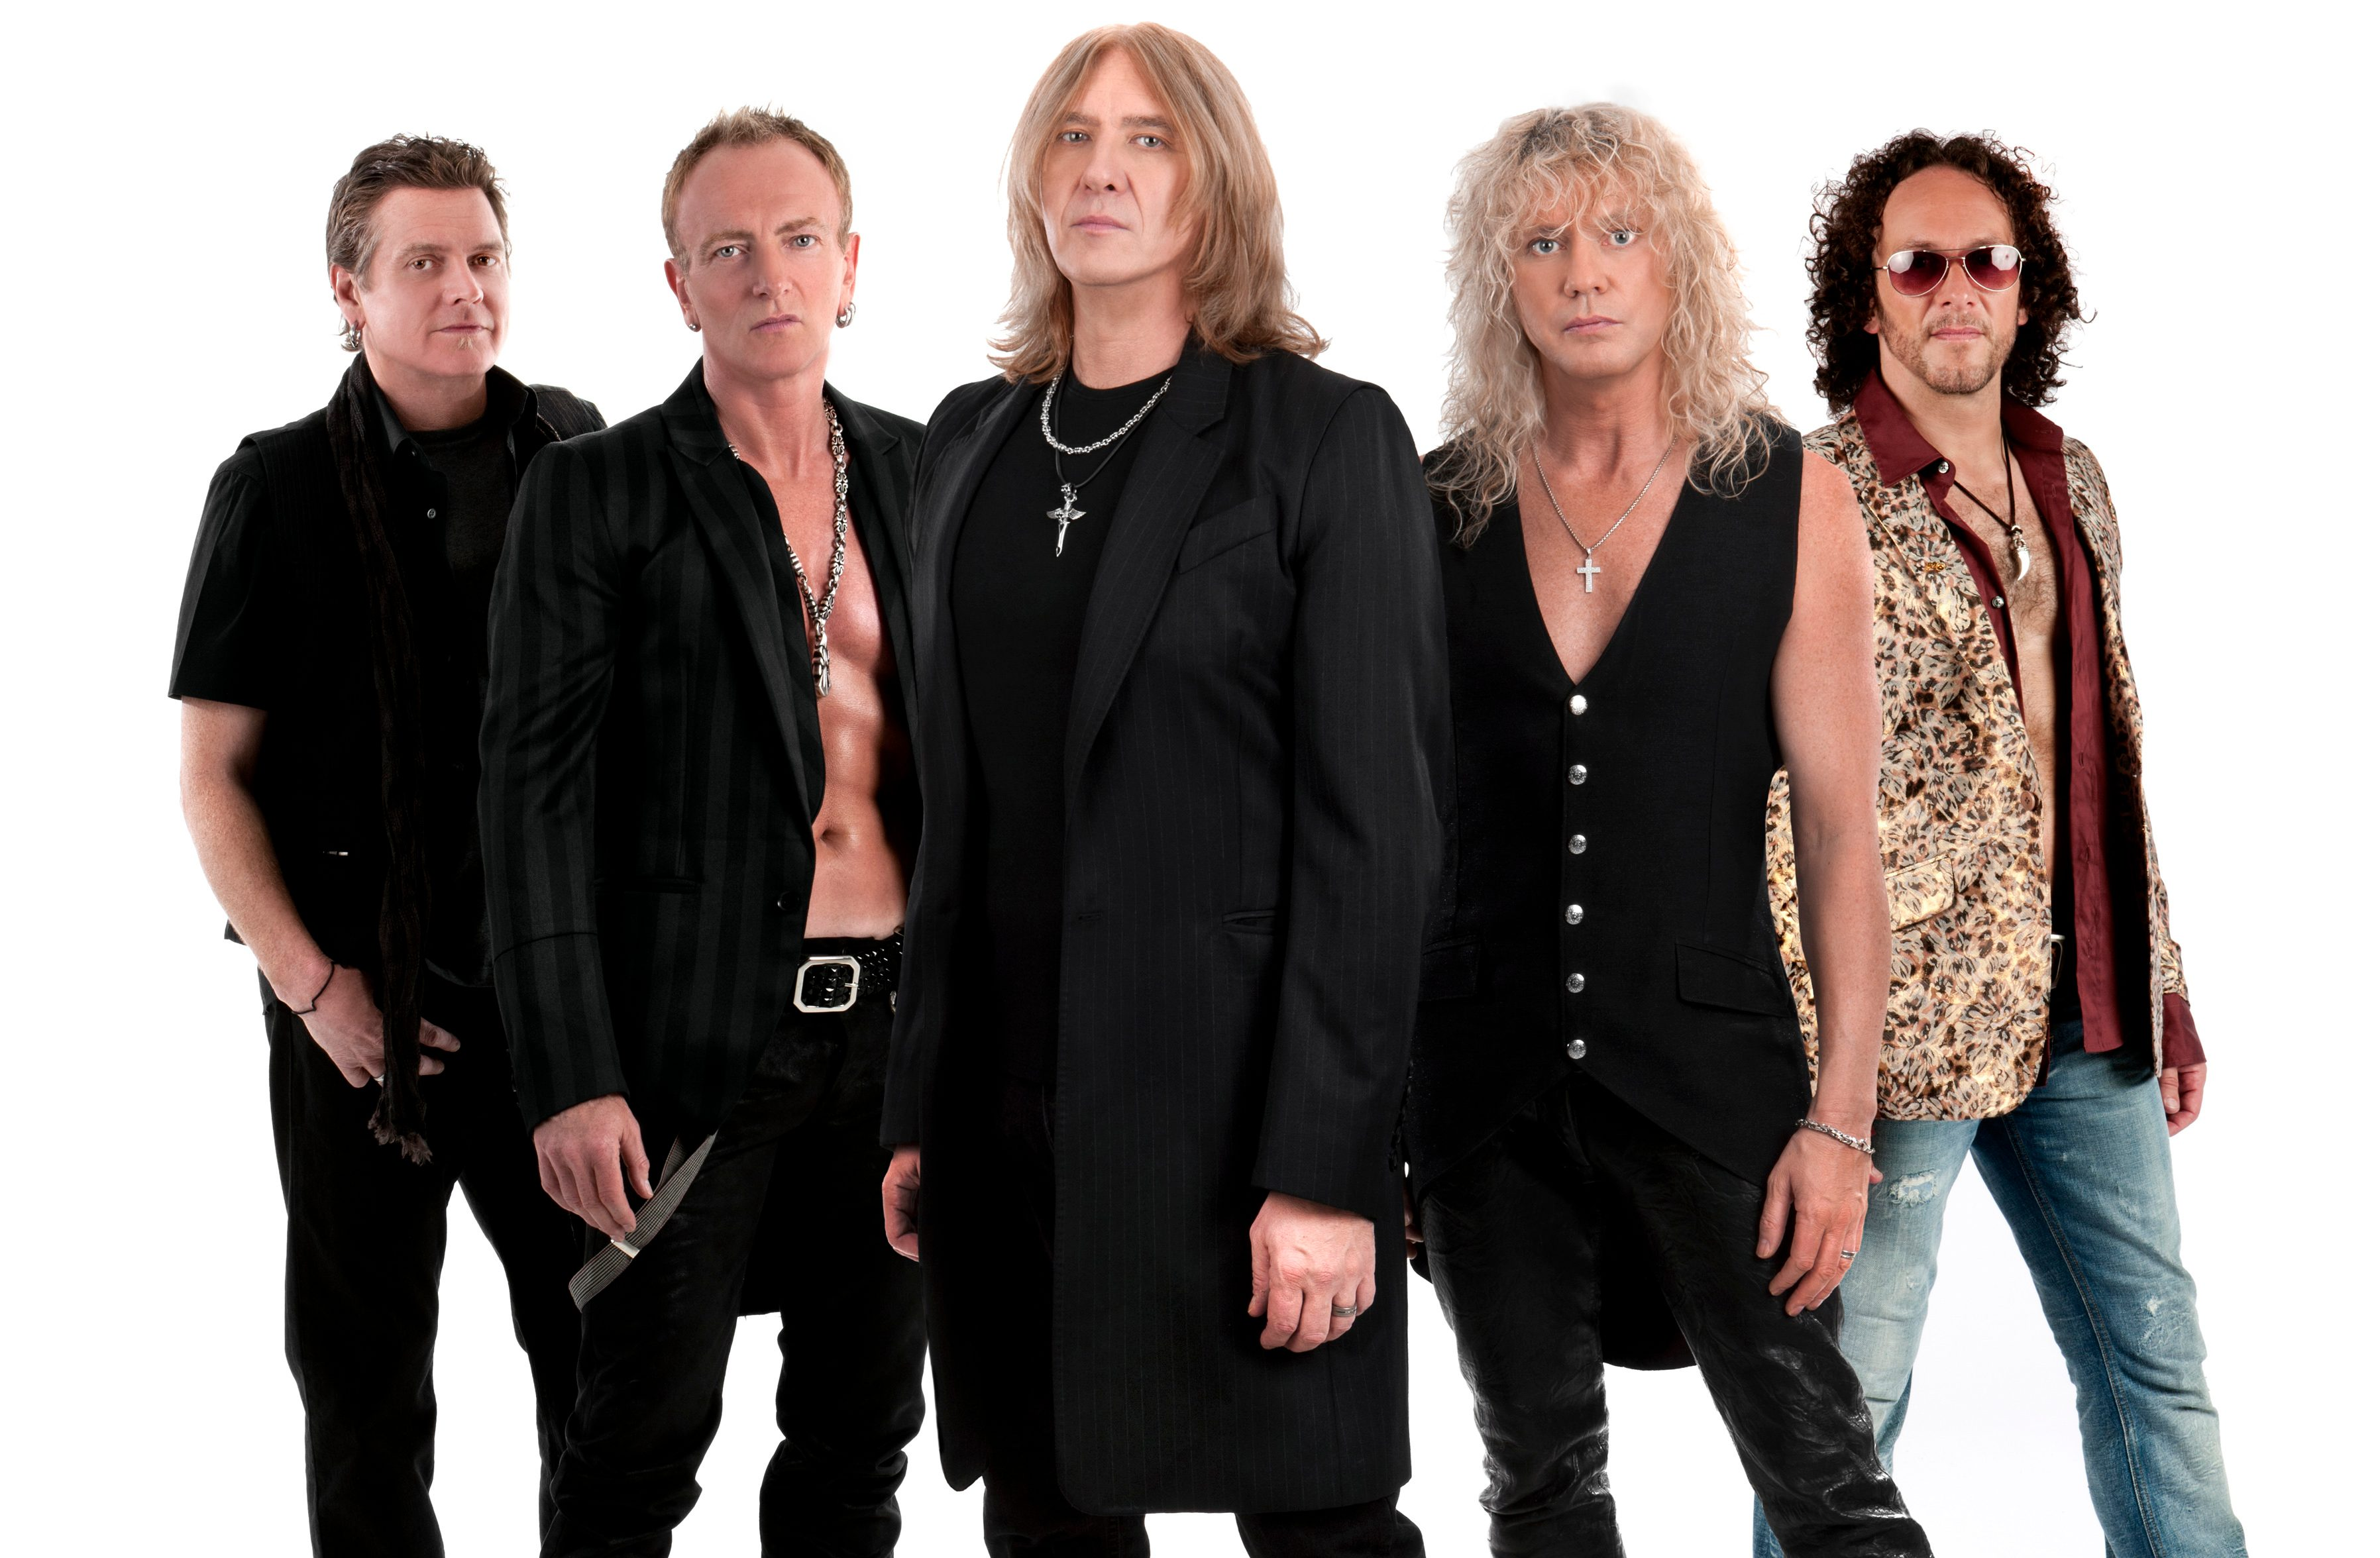 Journey and Def Leppard @ AT&T Park - September 21, 2018